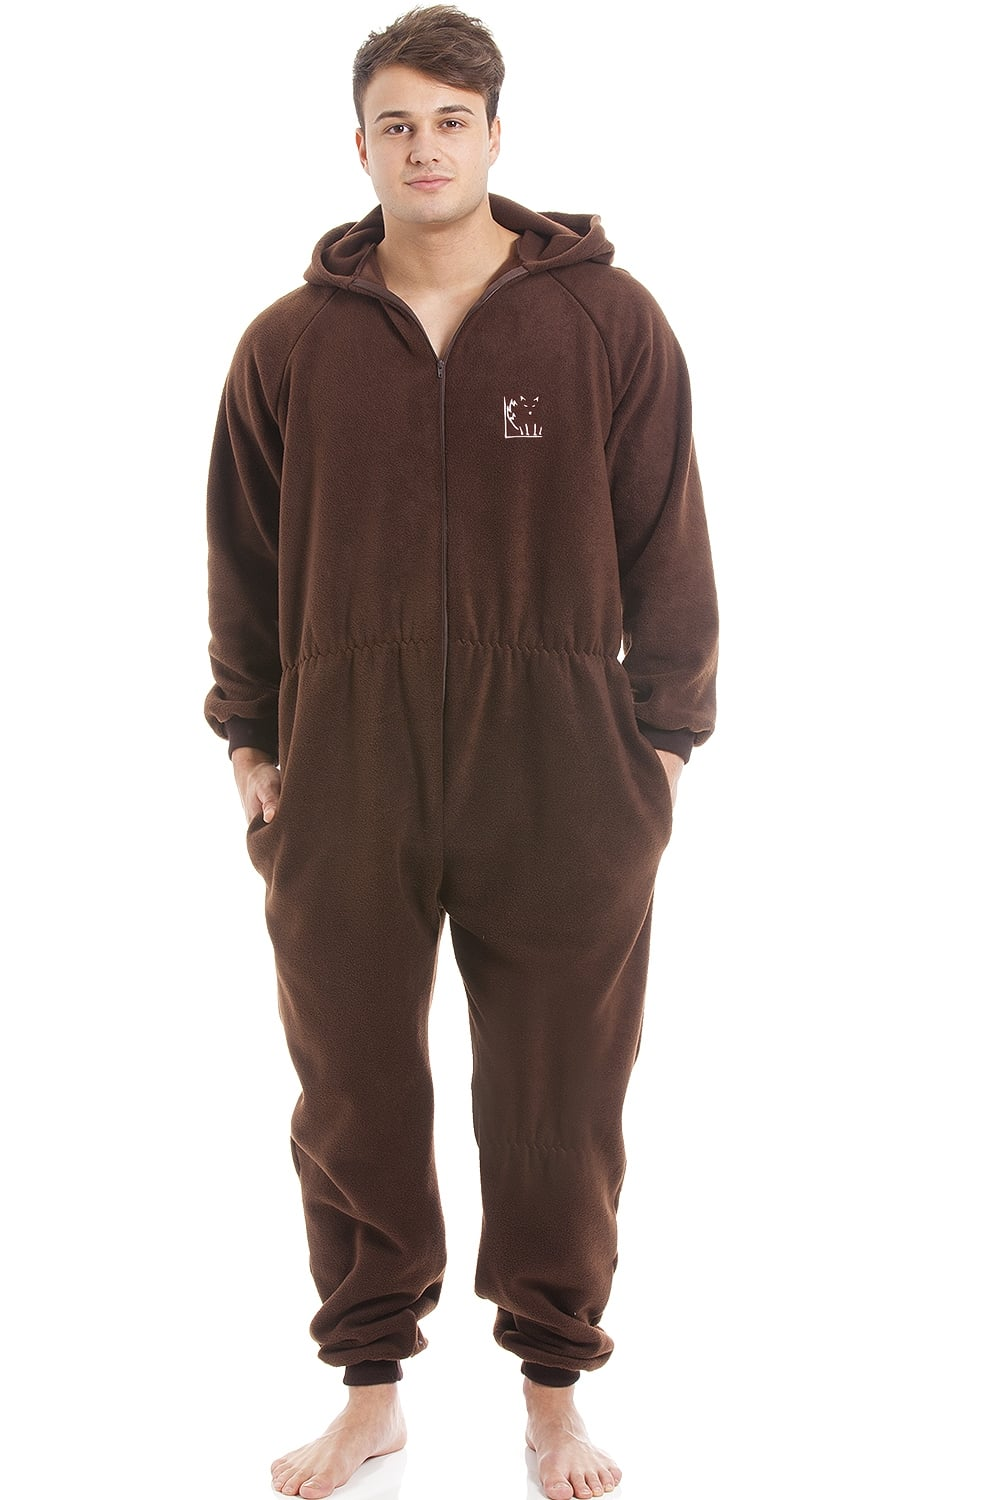 taradsod.tk: mens onesie pajamas. From The Community. Amazon Try Prime All material fleece non footed adult onesie jumpsuits are made using ultra Alexander Del Rossa Mens Fleece Solid Colored Onesie, Hooded Footed Jumpsuit Pajamas. by Alexander Del Rossa. $ $ 39 99 Prime.